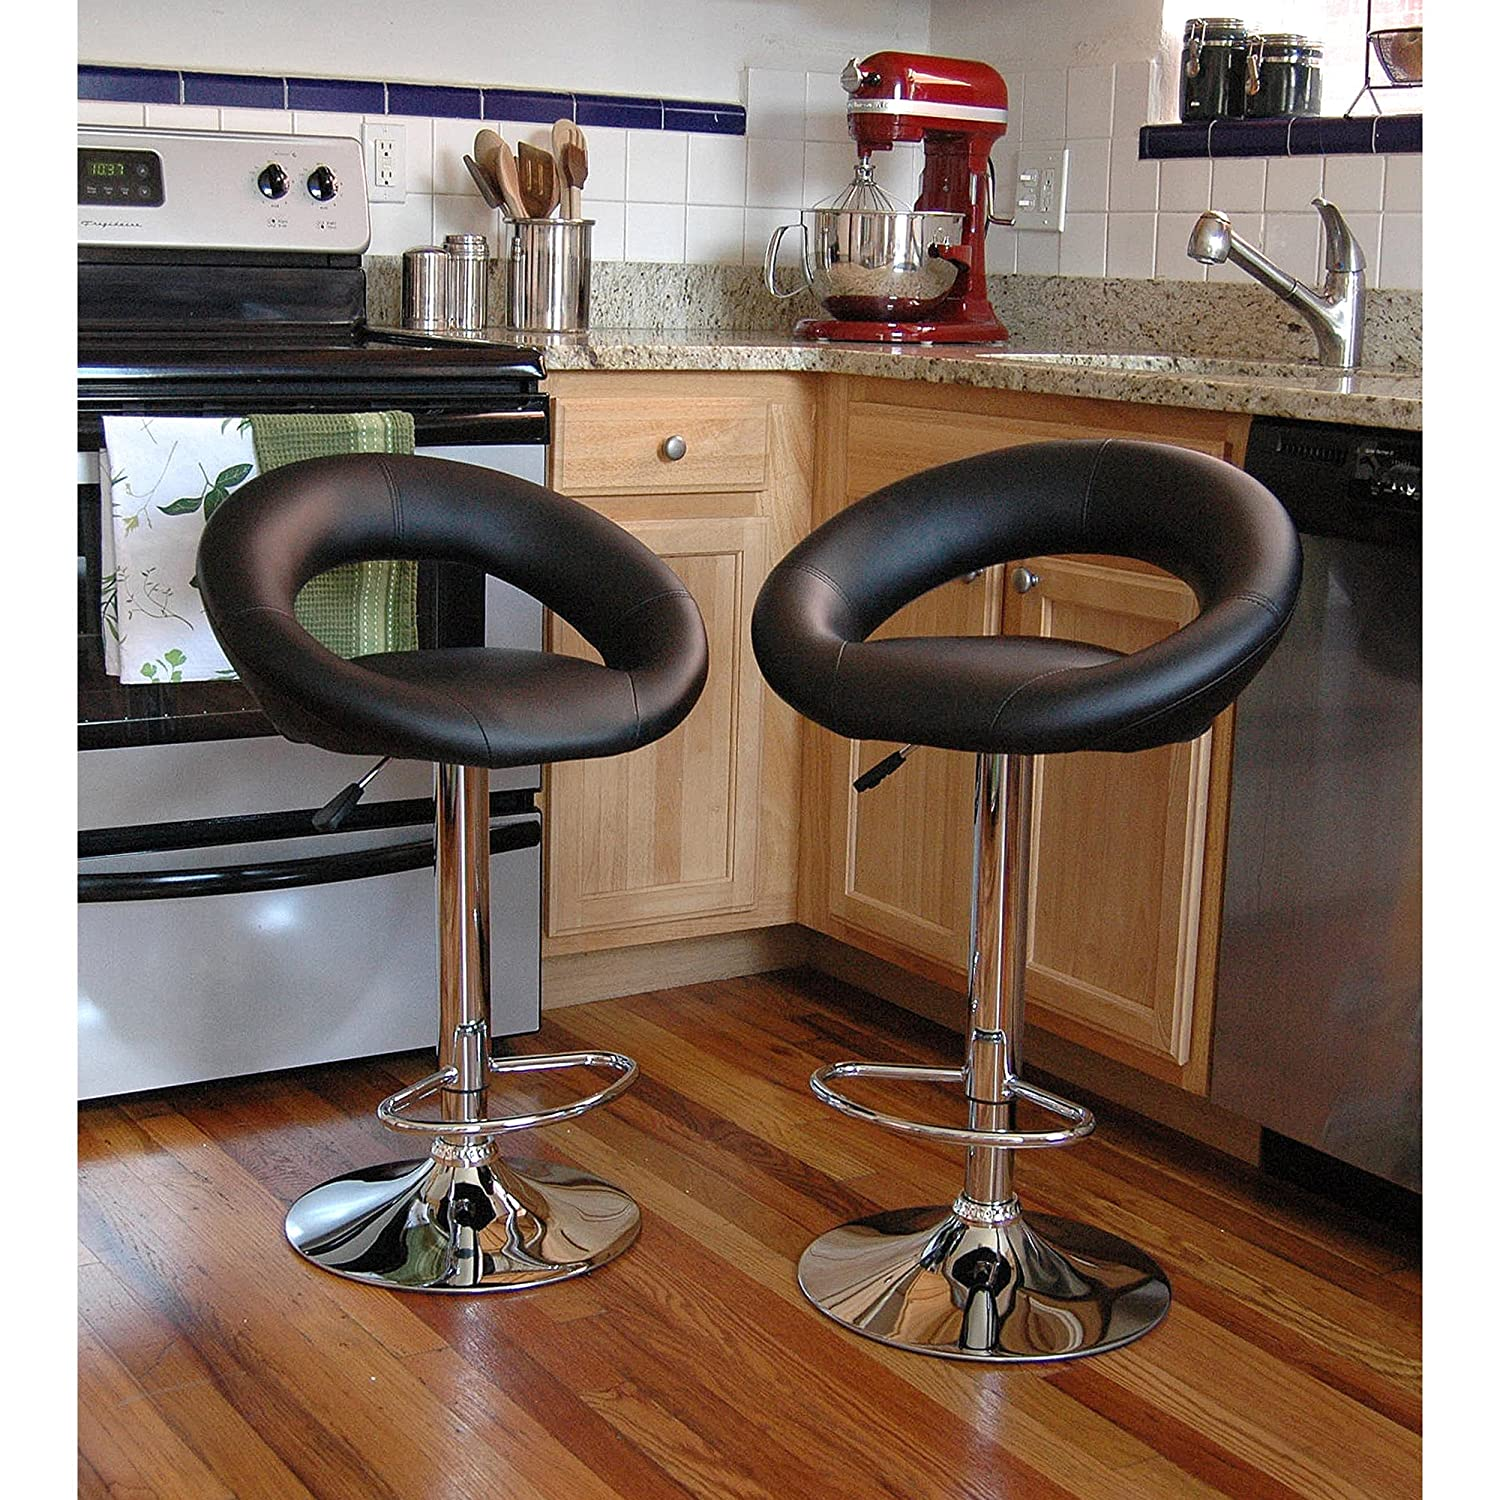 Swivel Counter Stool Bar Stool High Chair Black Kitchen: Bar Stool Set 2 Piece Adjustable Height Seat Chair Swivel